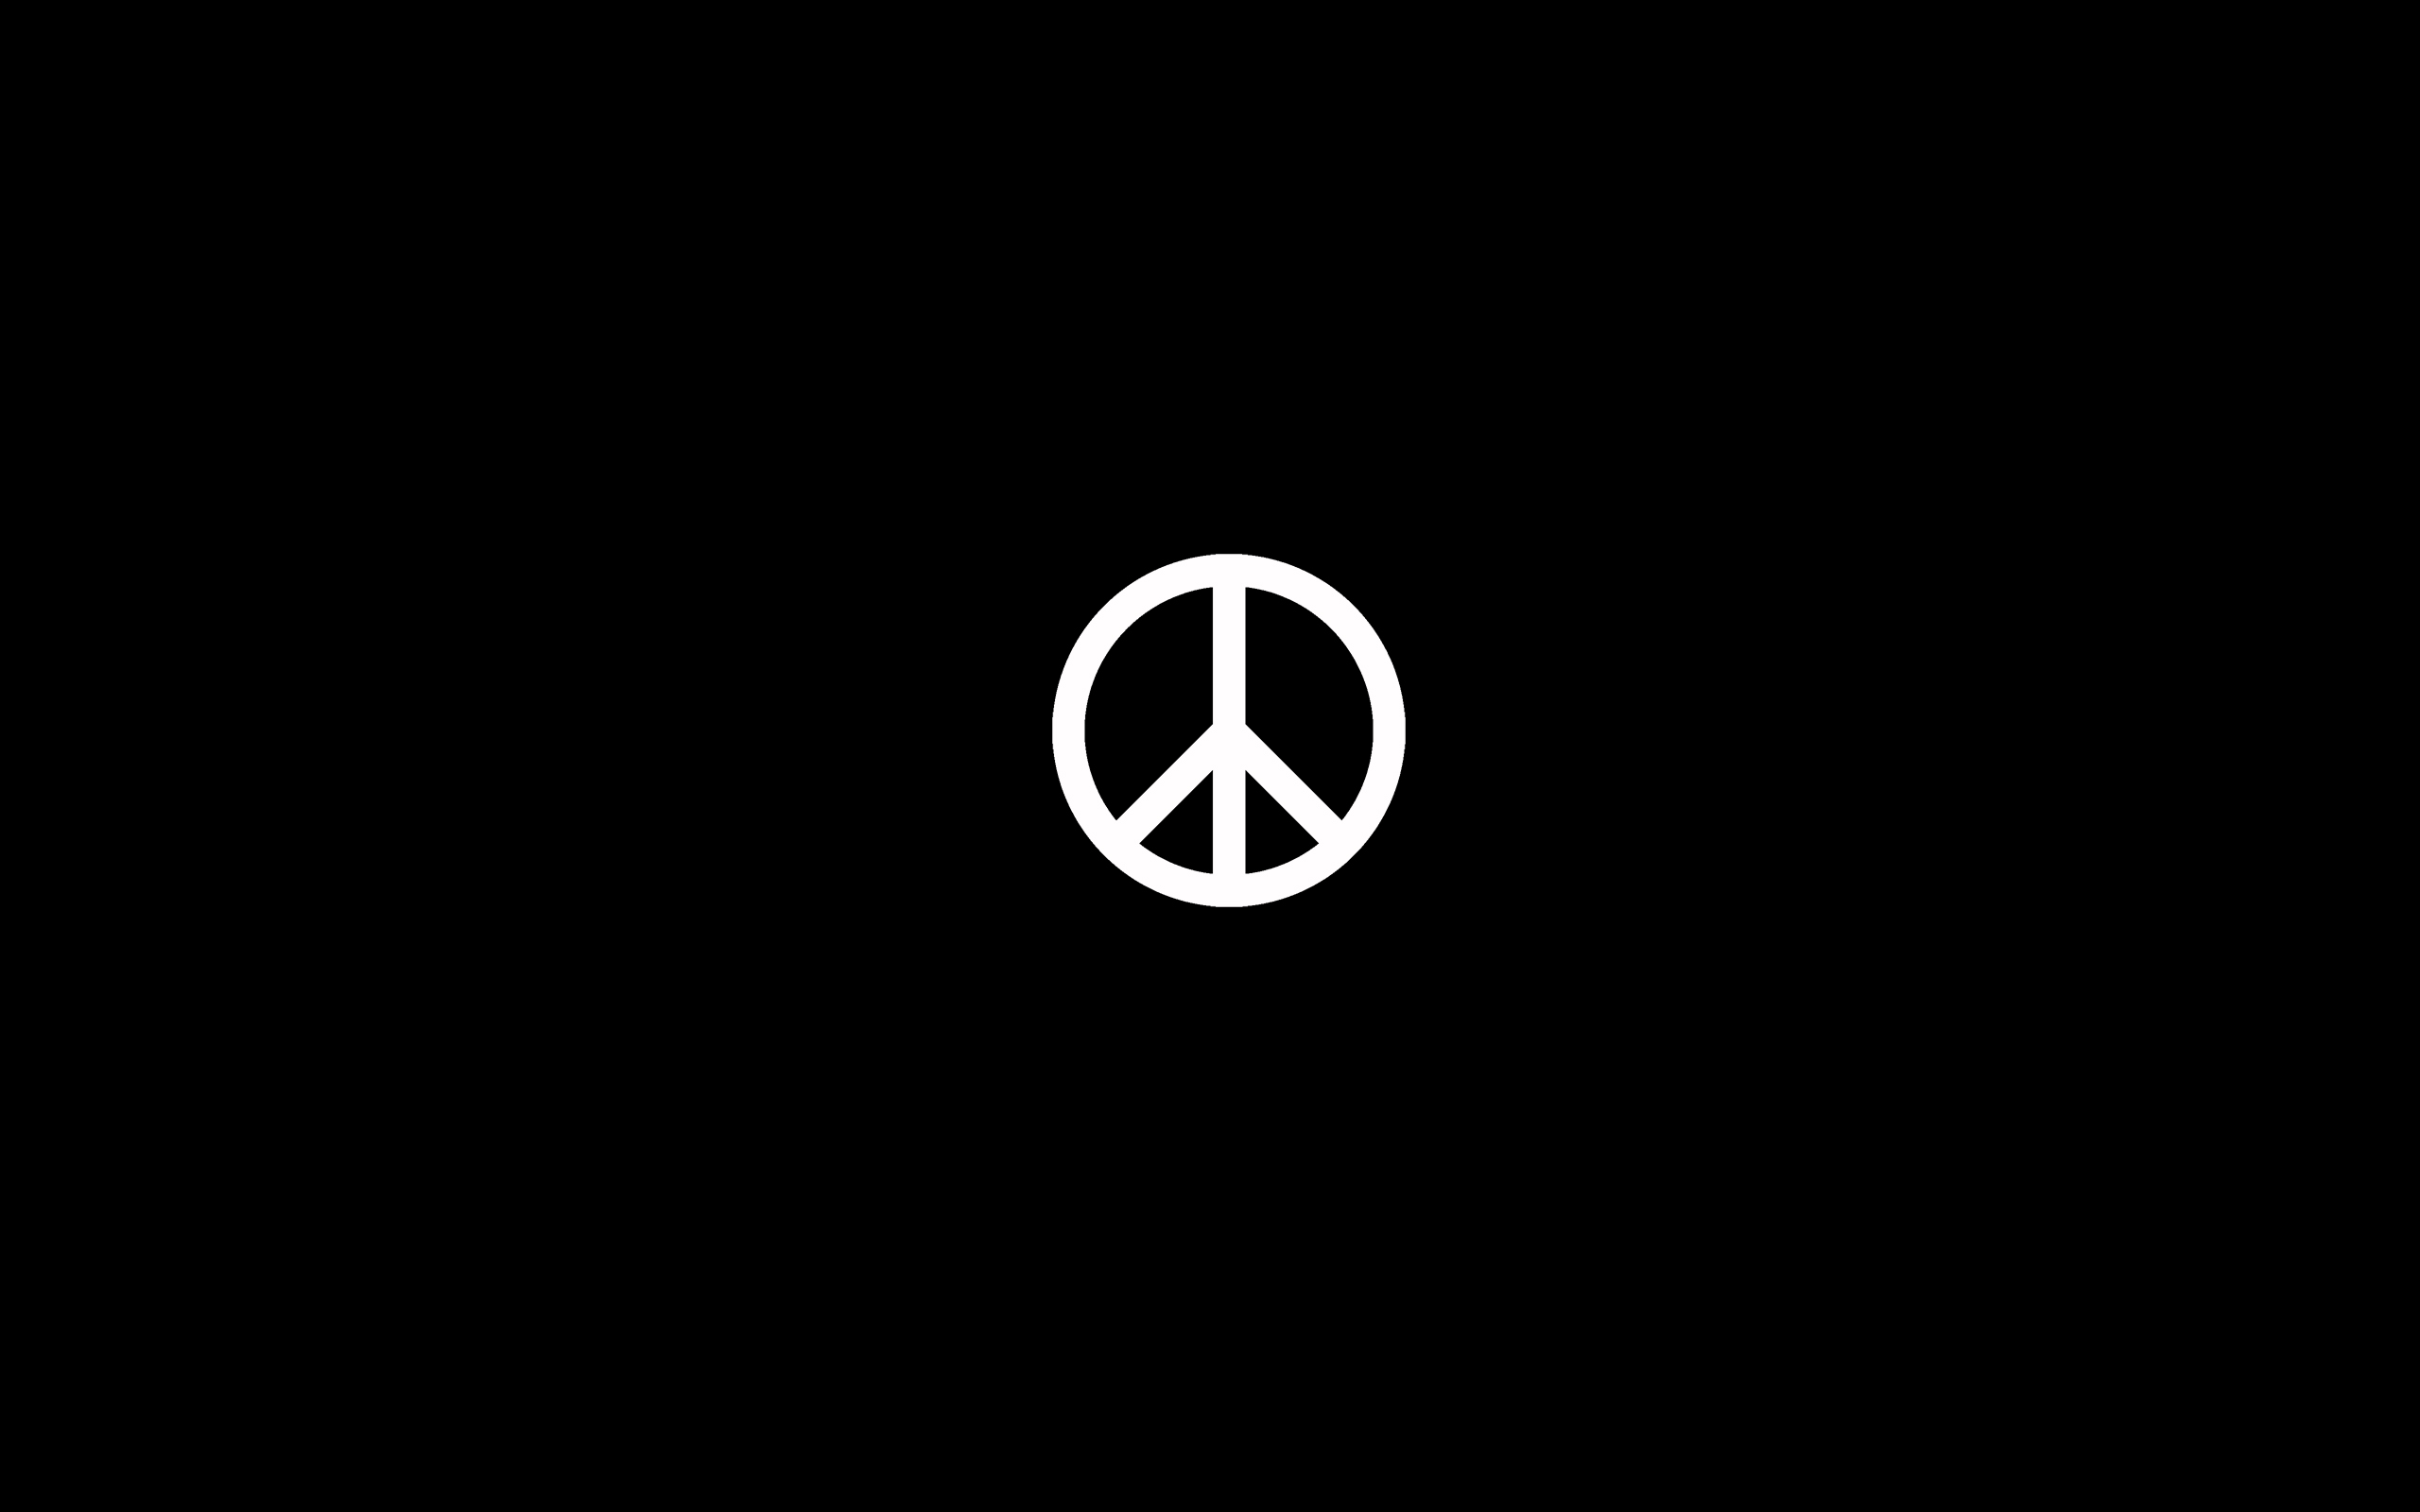 9 hd peace sign wallpapers hdwallsourcecom